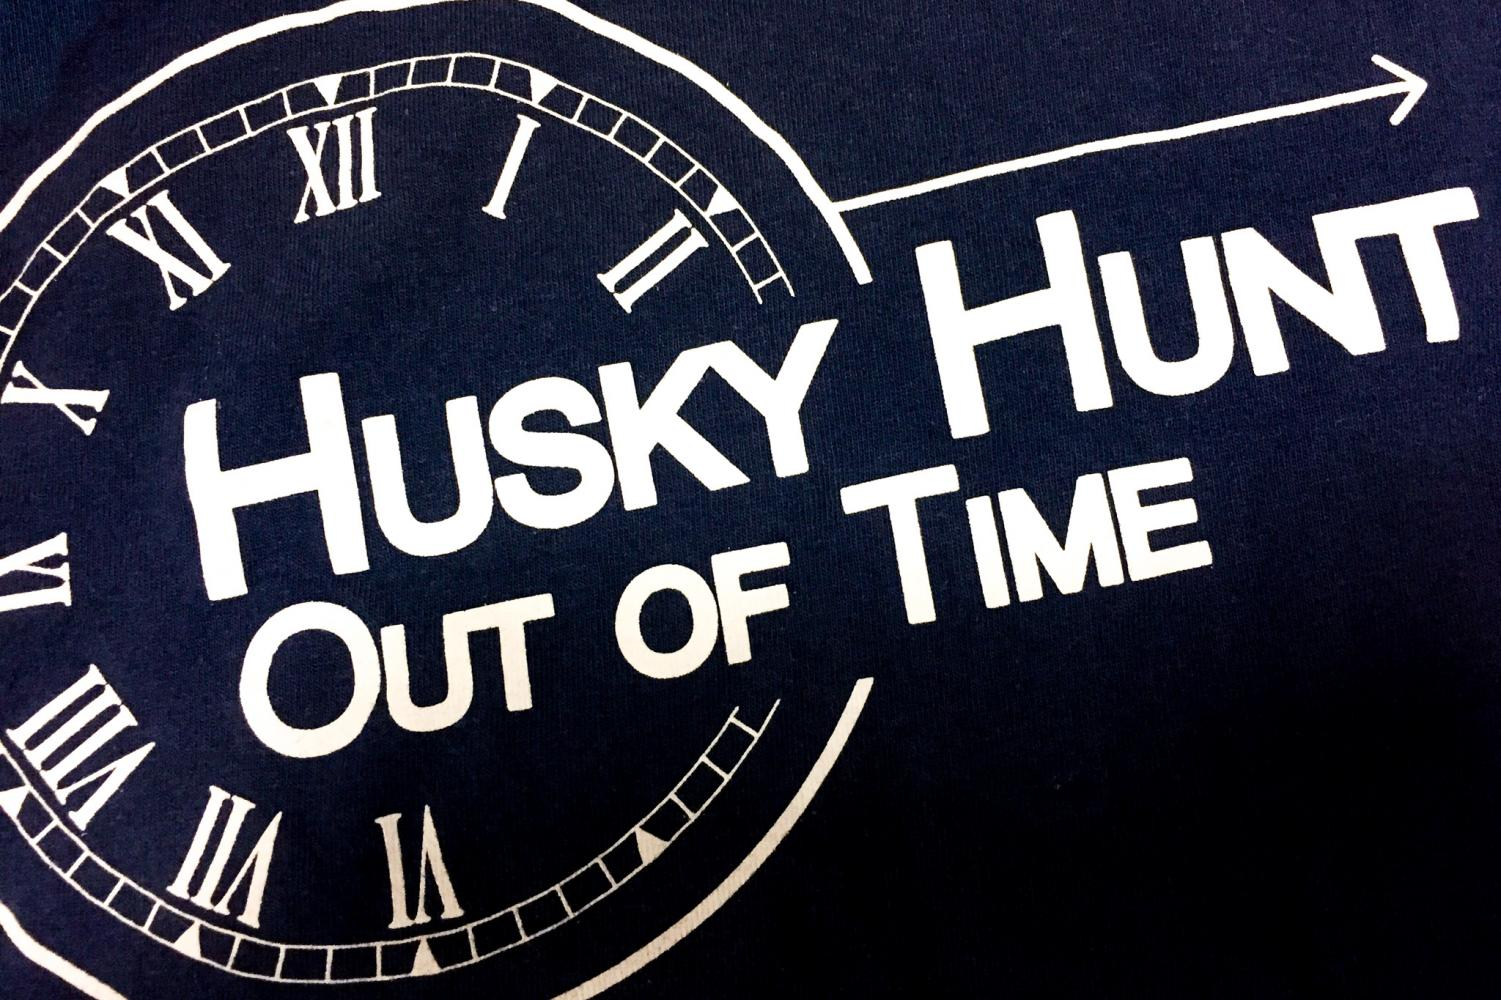 The theme for the 2018 Husky Hunt, which took place in November, was